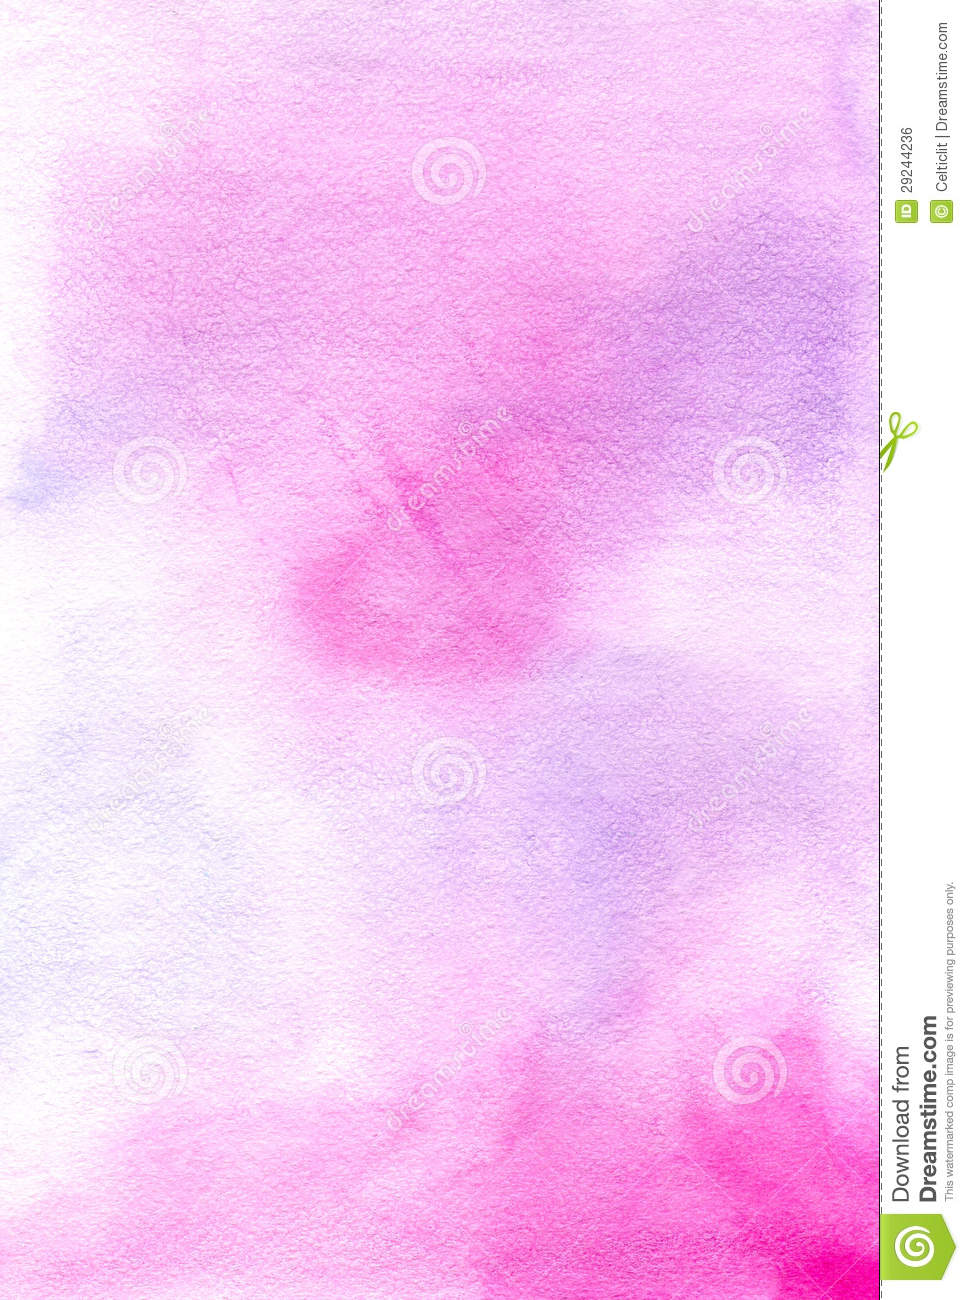 Watercolor pink hand painted background